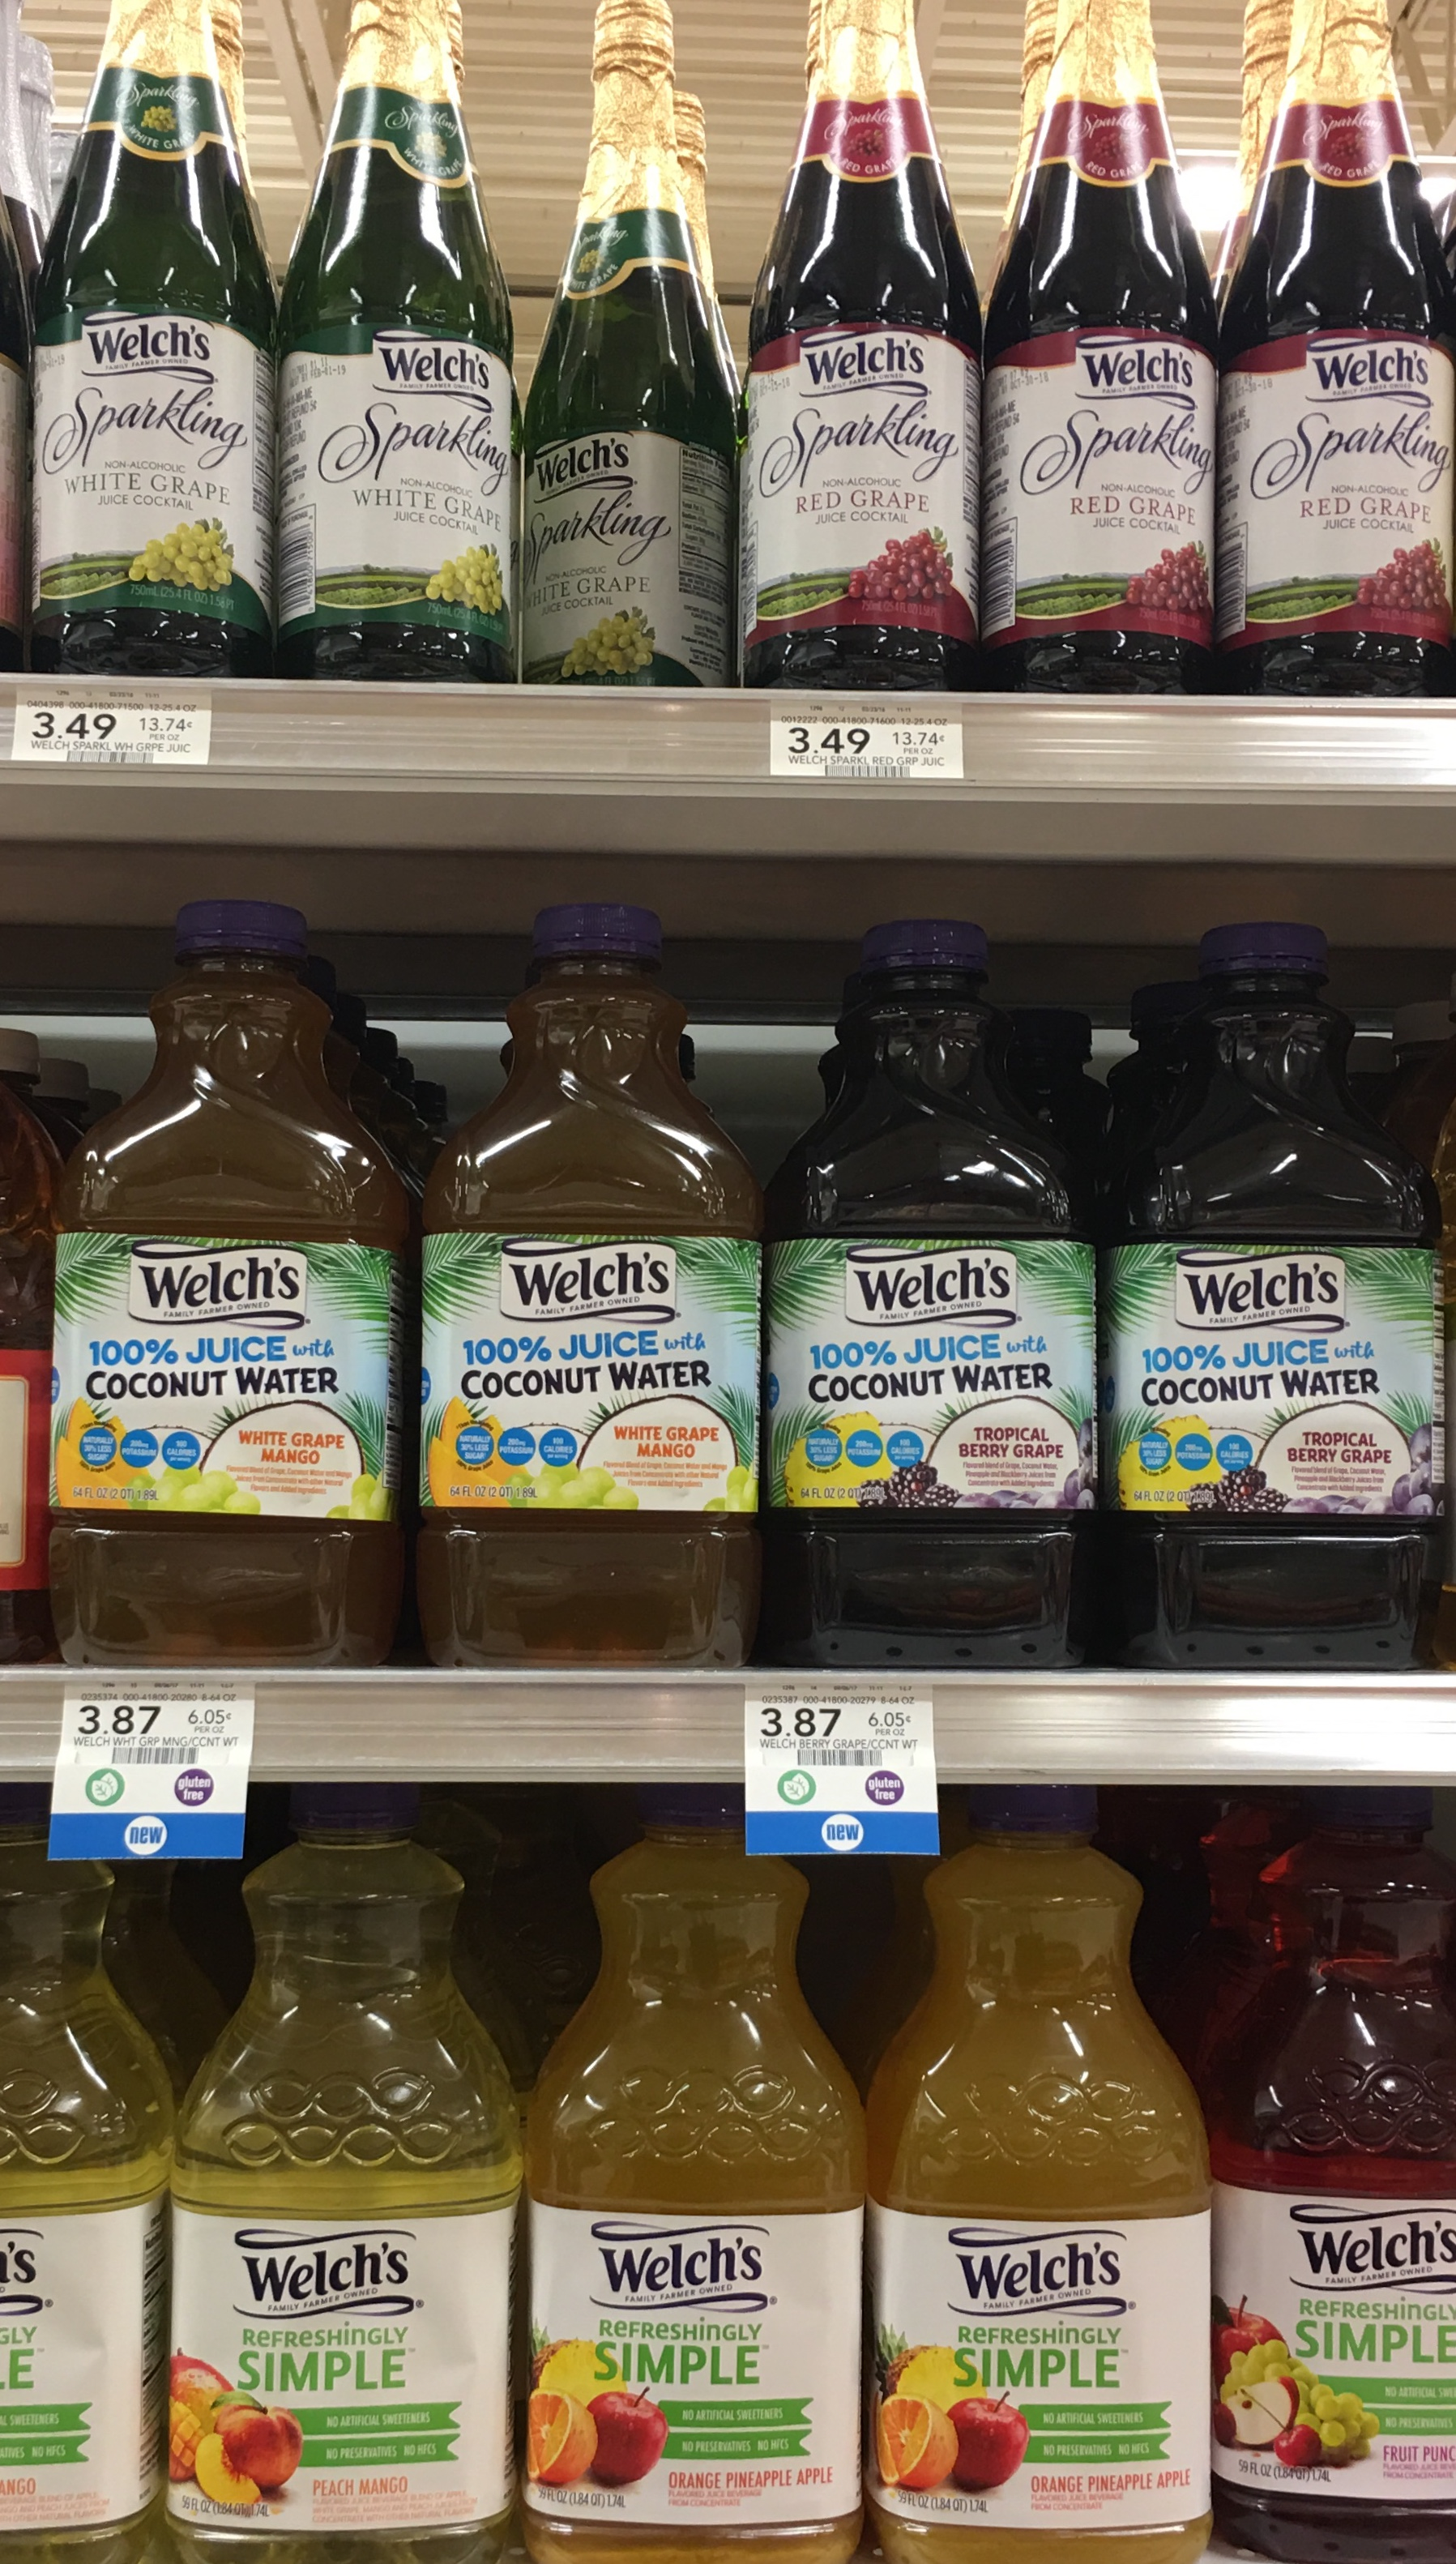 Welch's Grape Juice with Coconut Water